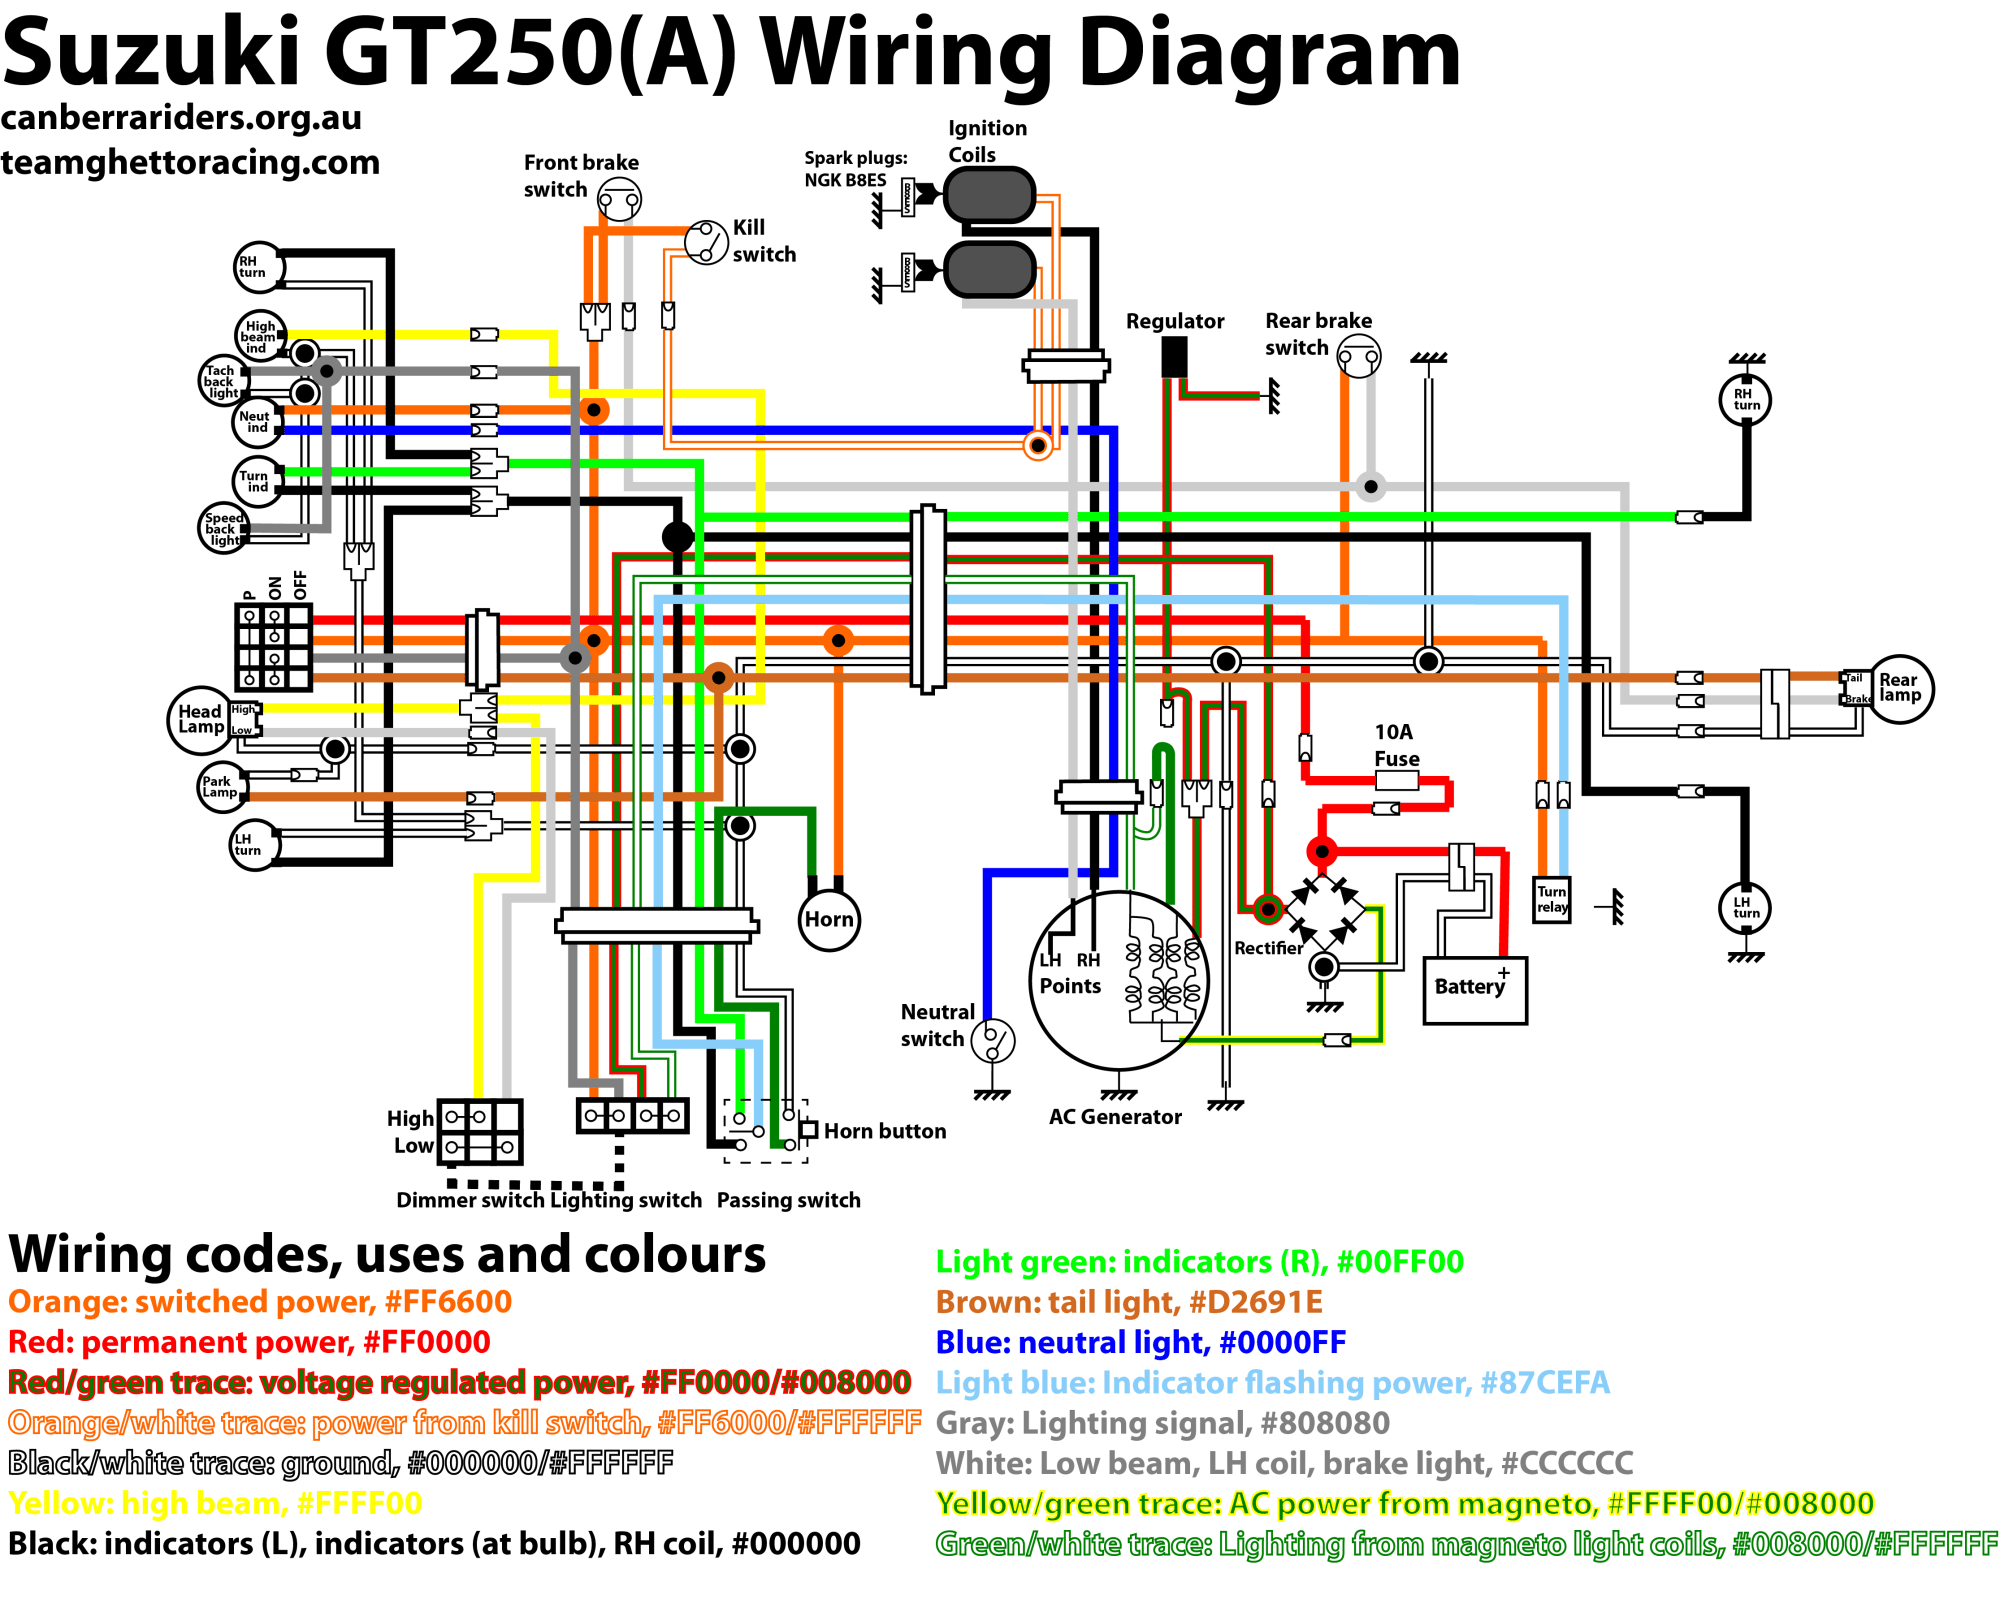 hight resolution of 1992 suzuki samurai parts diagram wiring schematic schematics rh parntesis co 1992 suzuki samurai fuse box